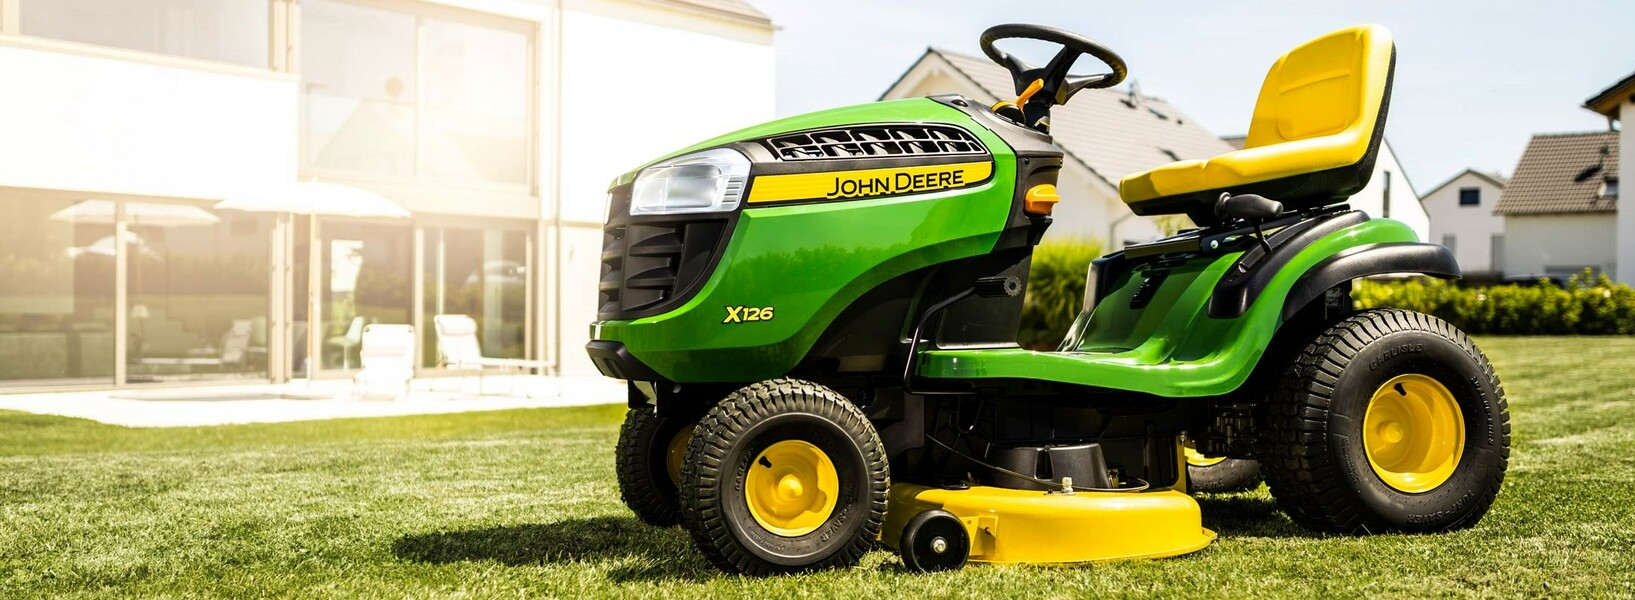 Photo of X126 lawn tractor